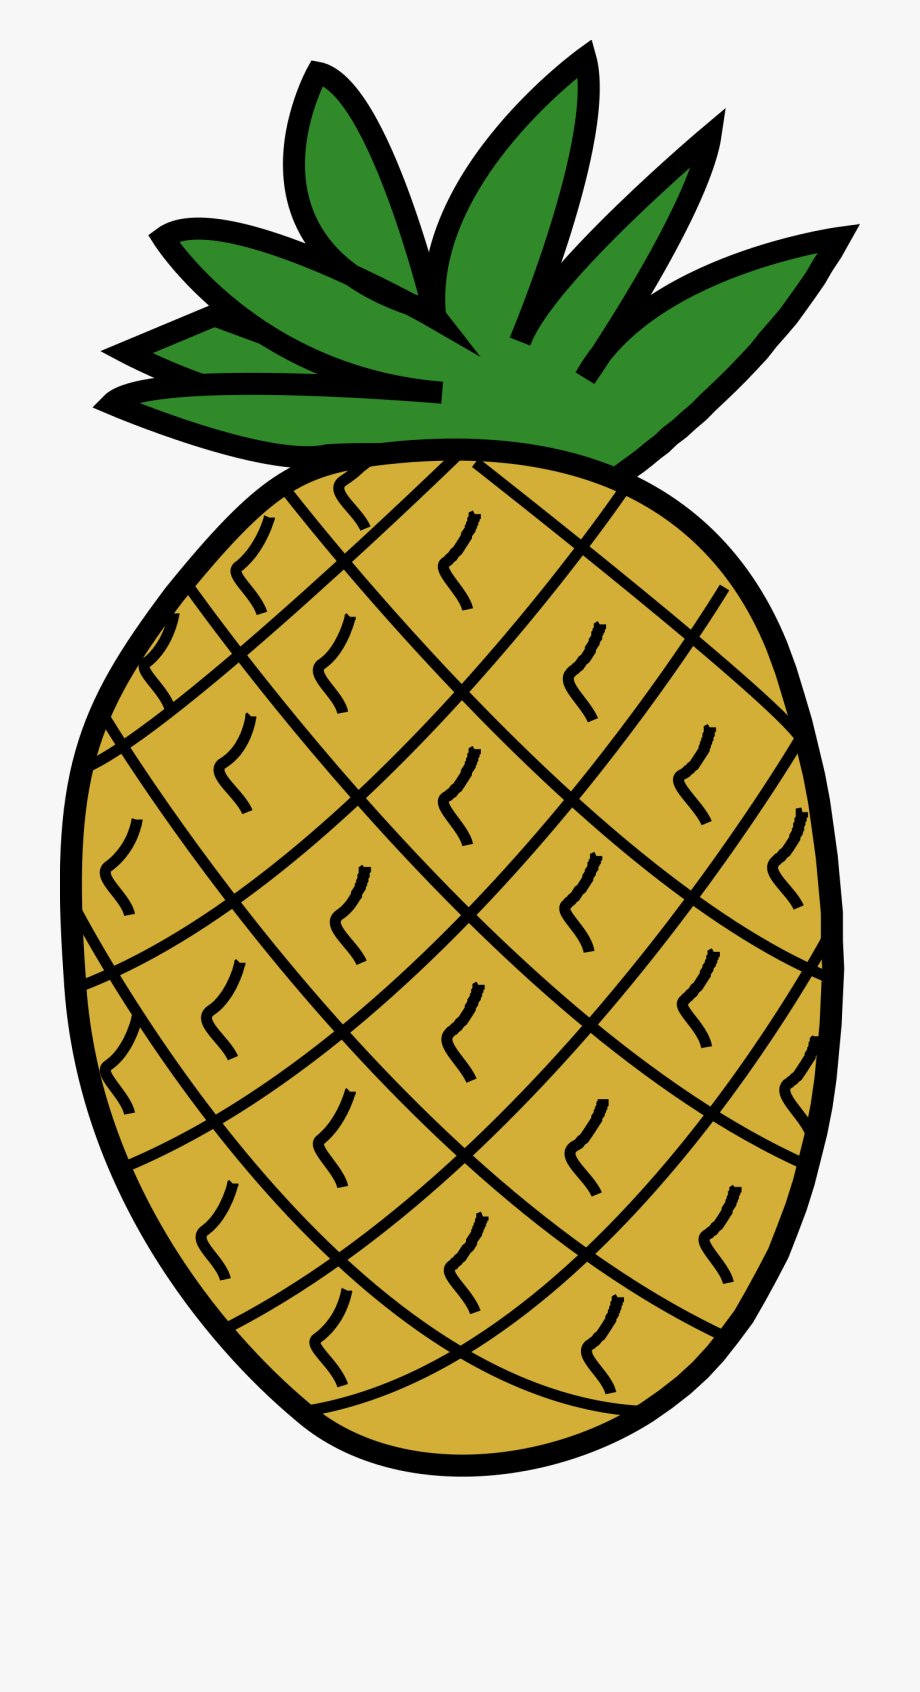 Picture of . Pineapple clipart pineaplle